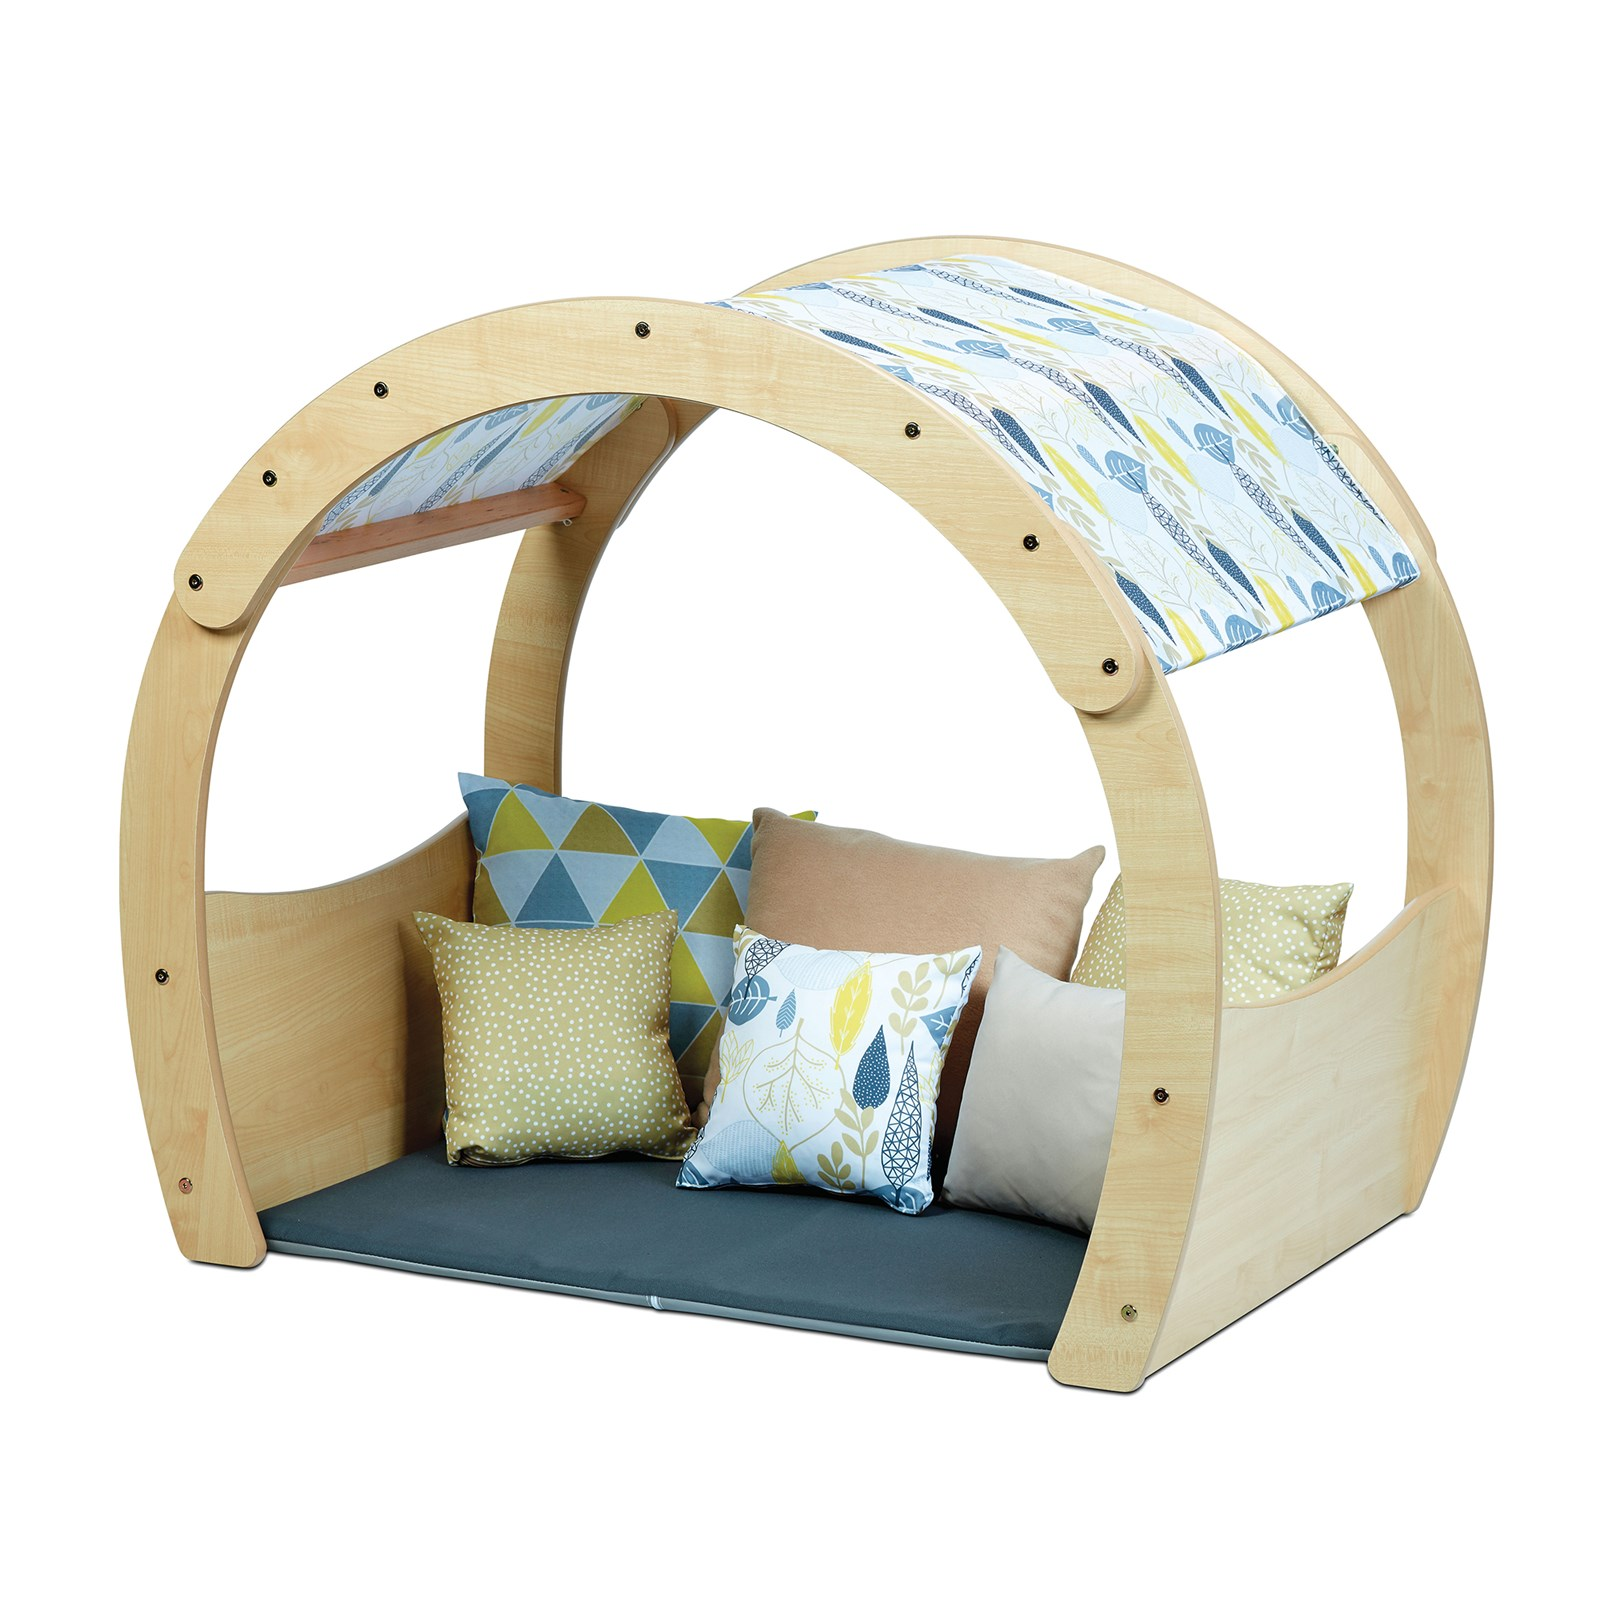 Small Cosy Cove Plus Meadow Accessory Set from Millhouse